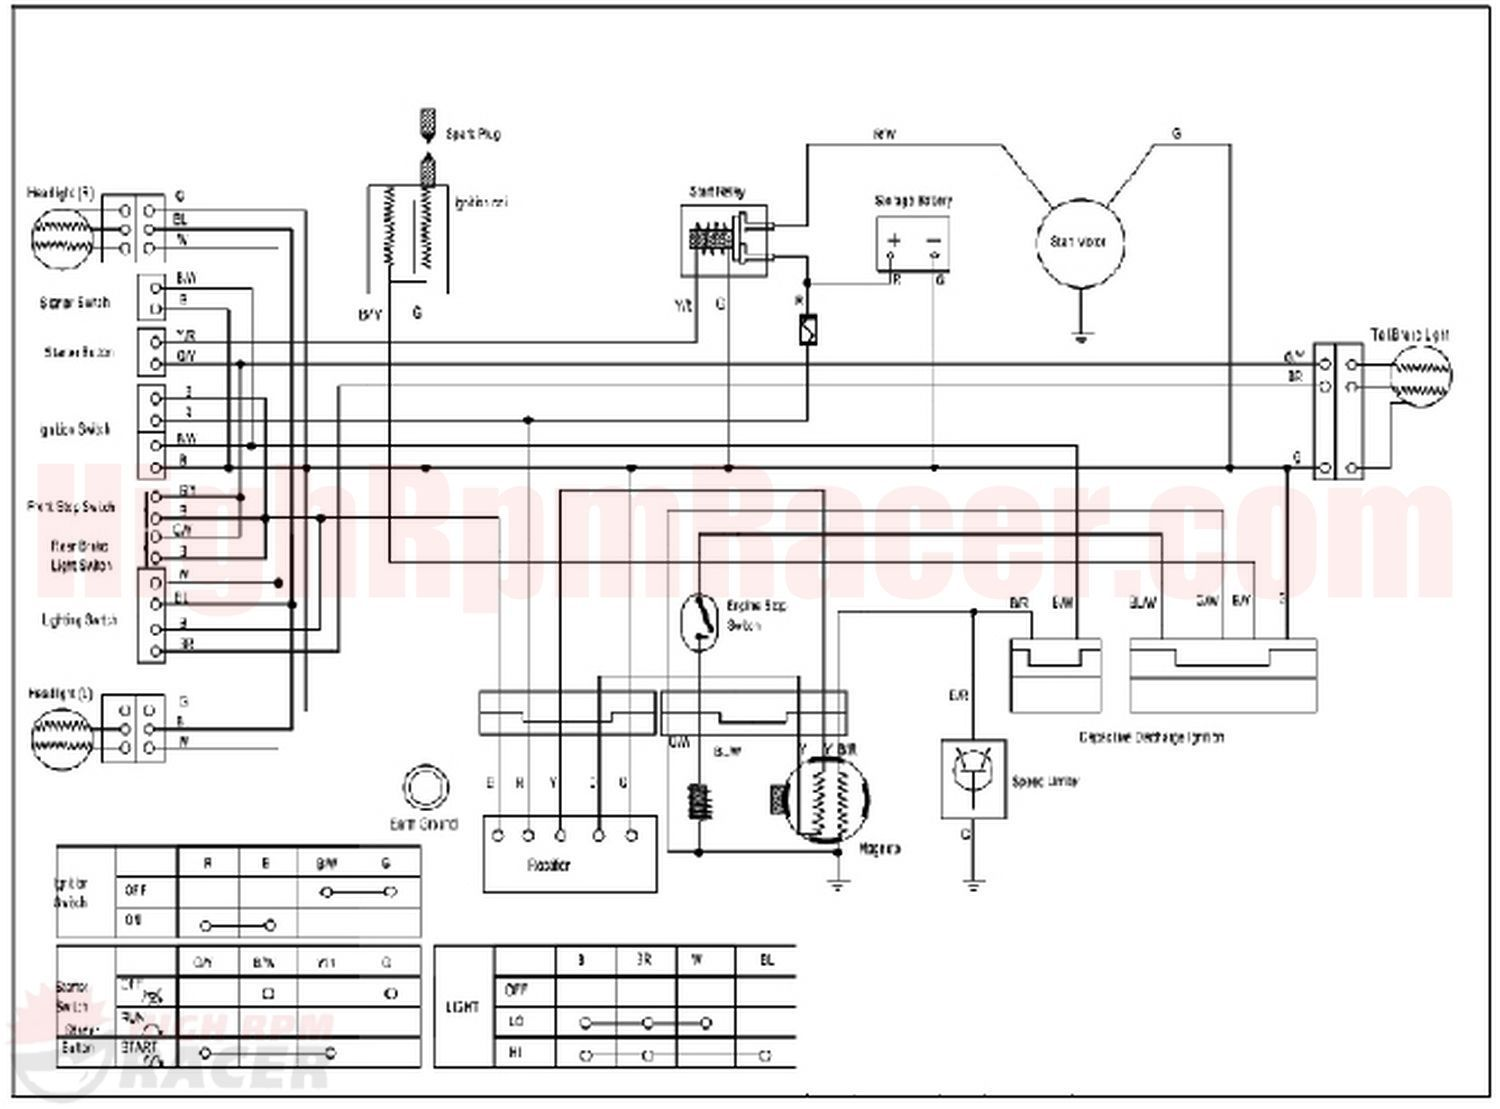 Baja 50cc Atv Wiring Diagram Starting Know About Wiring Diagram \u2022 Dirt  Bike CDI Ignition Diagram Baja 50cc Atv Wiring Diagram